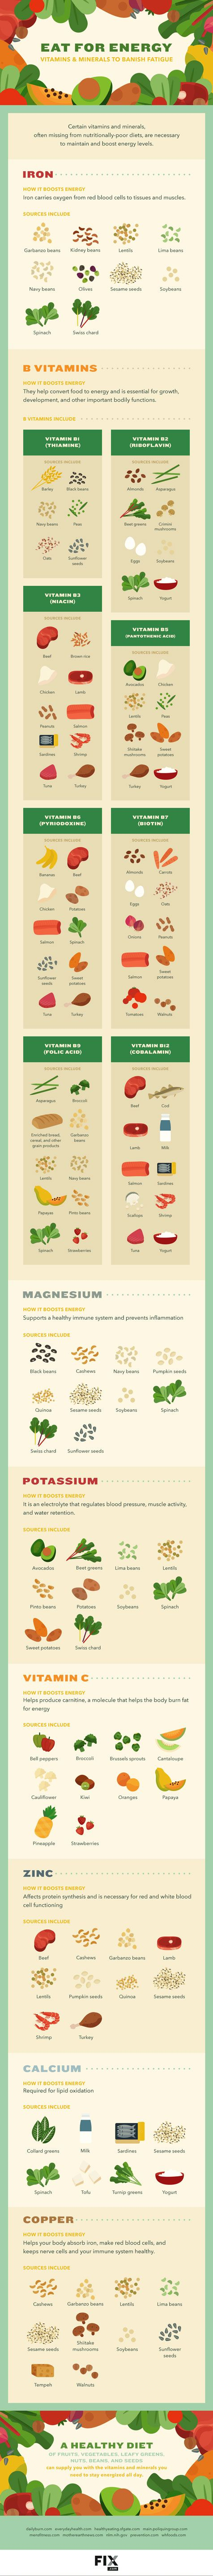 @hotinfographics : Vitamins and Minerals to Banish Fatigue Infographic - https://t.co/XyaAVzctSn